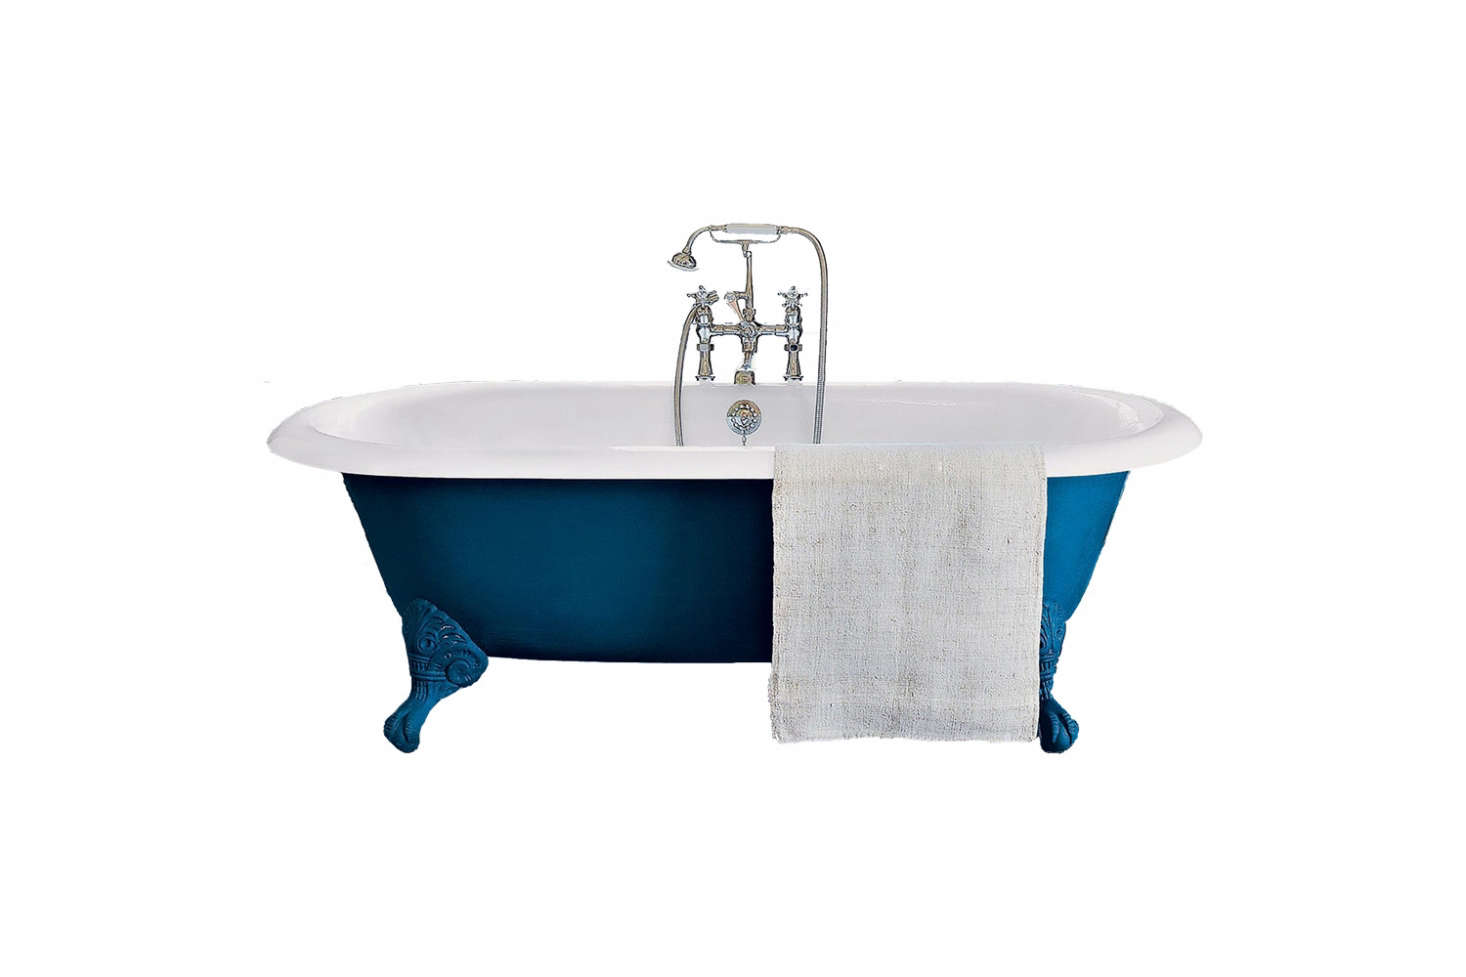 A similar cast iron freestanding tub to the one in the hotel suite is the Drummonds the Spey Cast Iron Bath Tub with Ball & Claw Feet; prices start at £3,925.